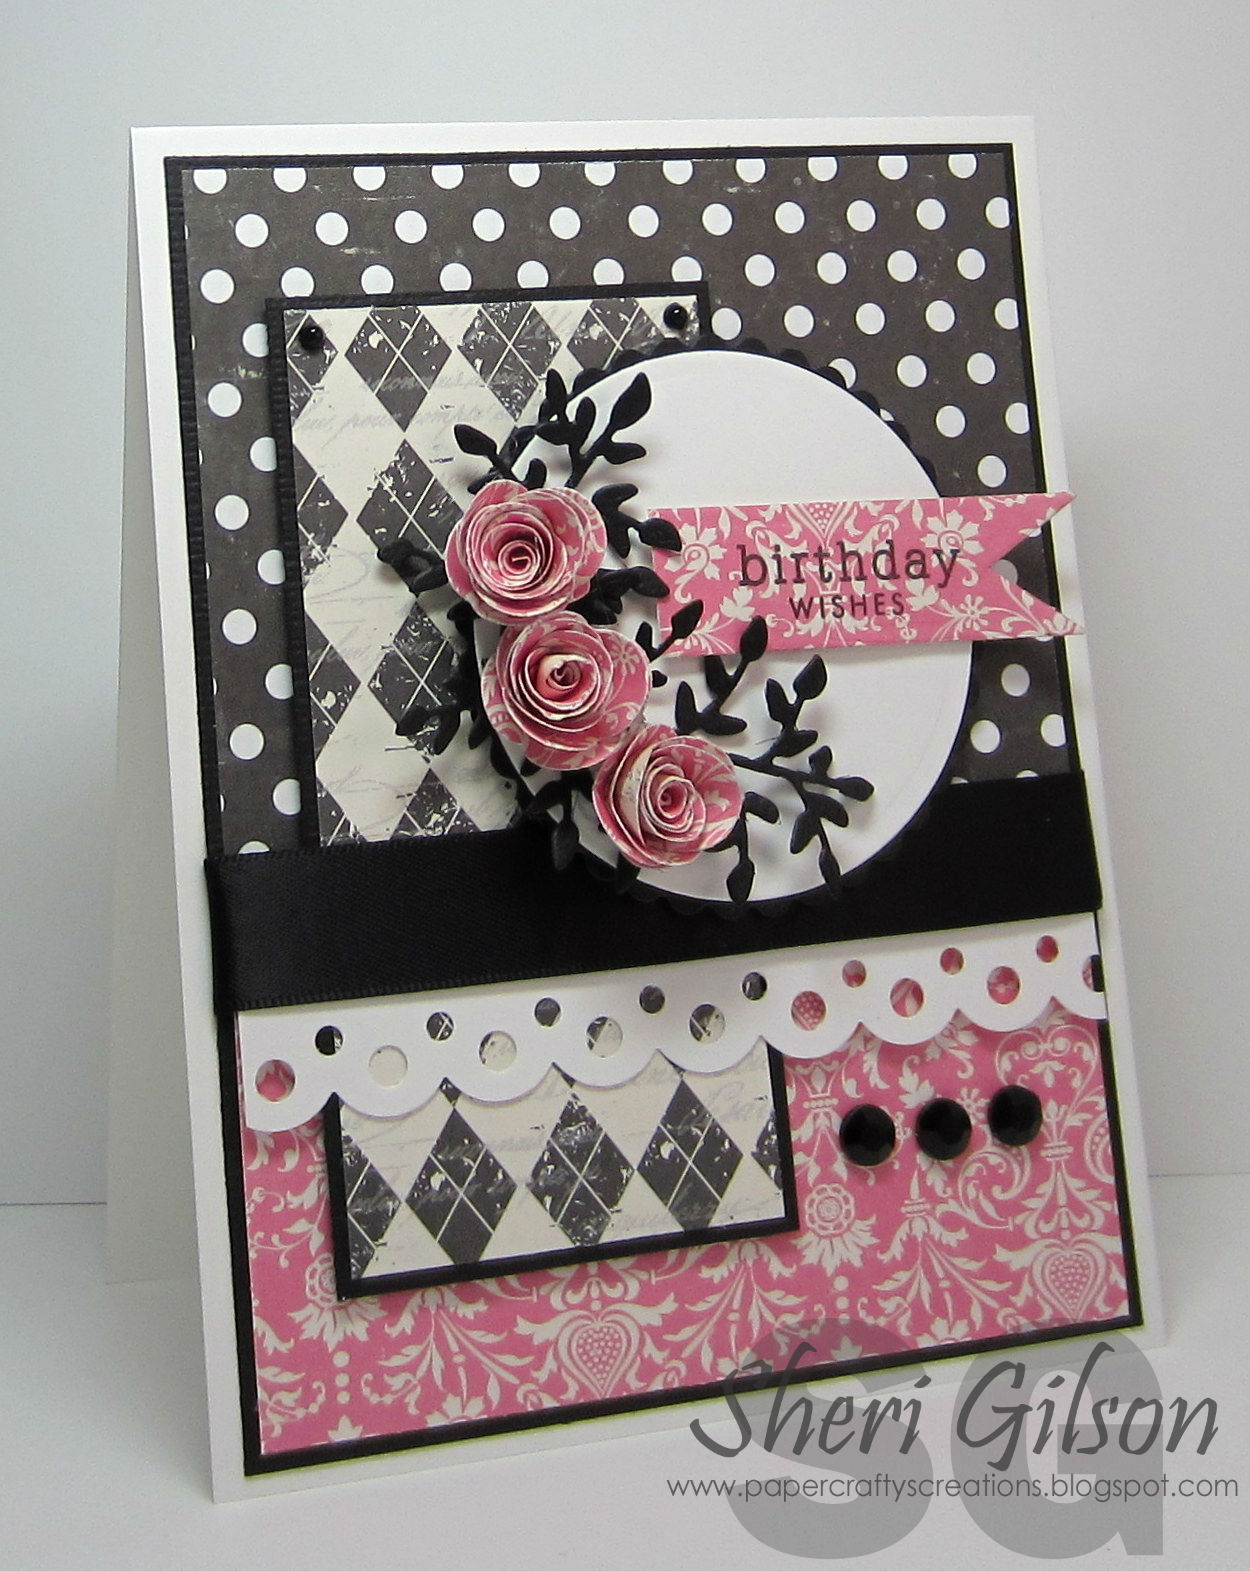 paper crafty u0026 39 s creations   the deconstructed sketch